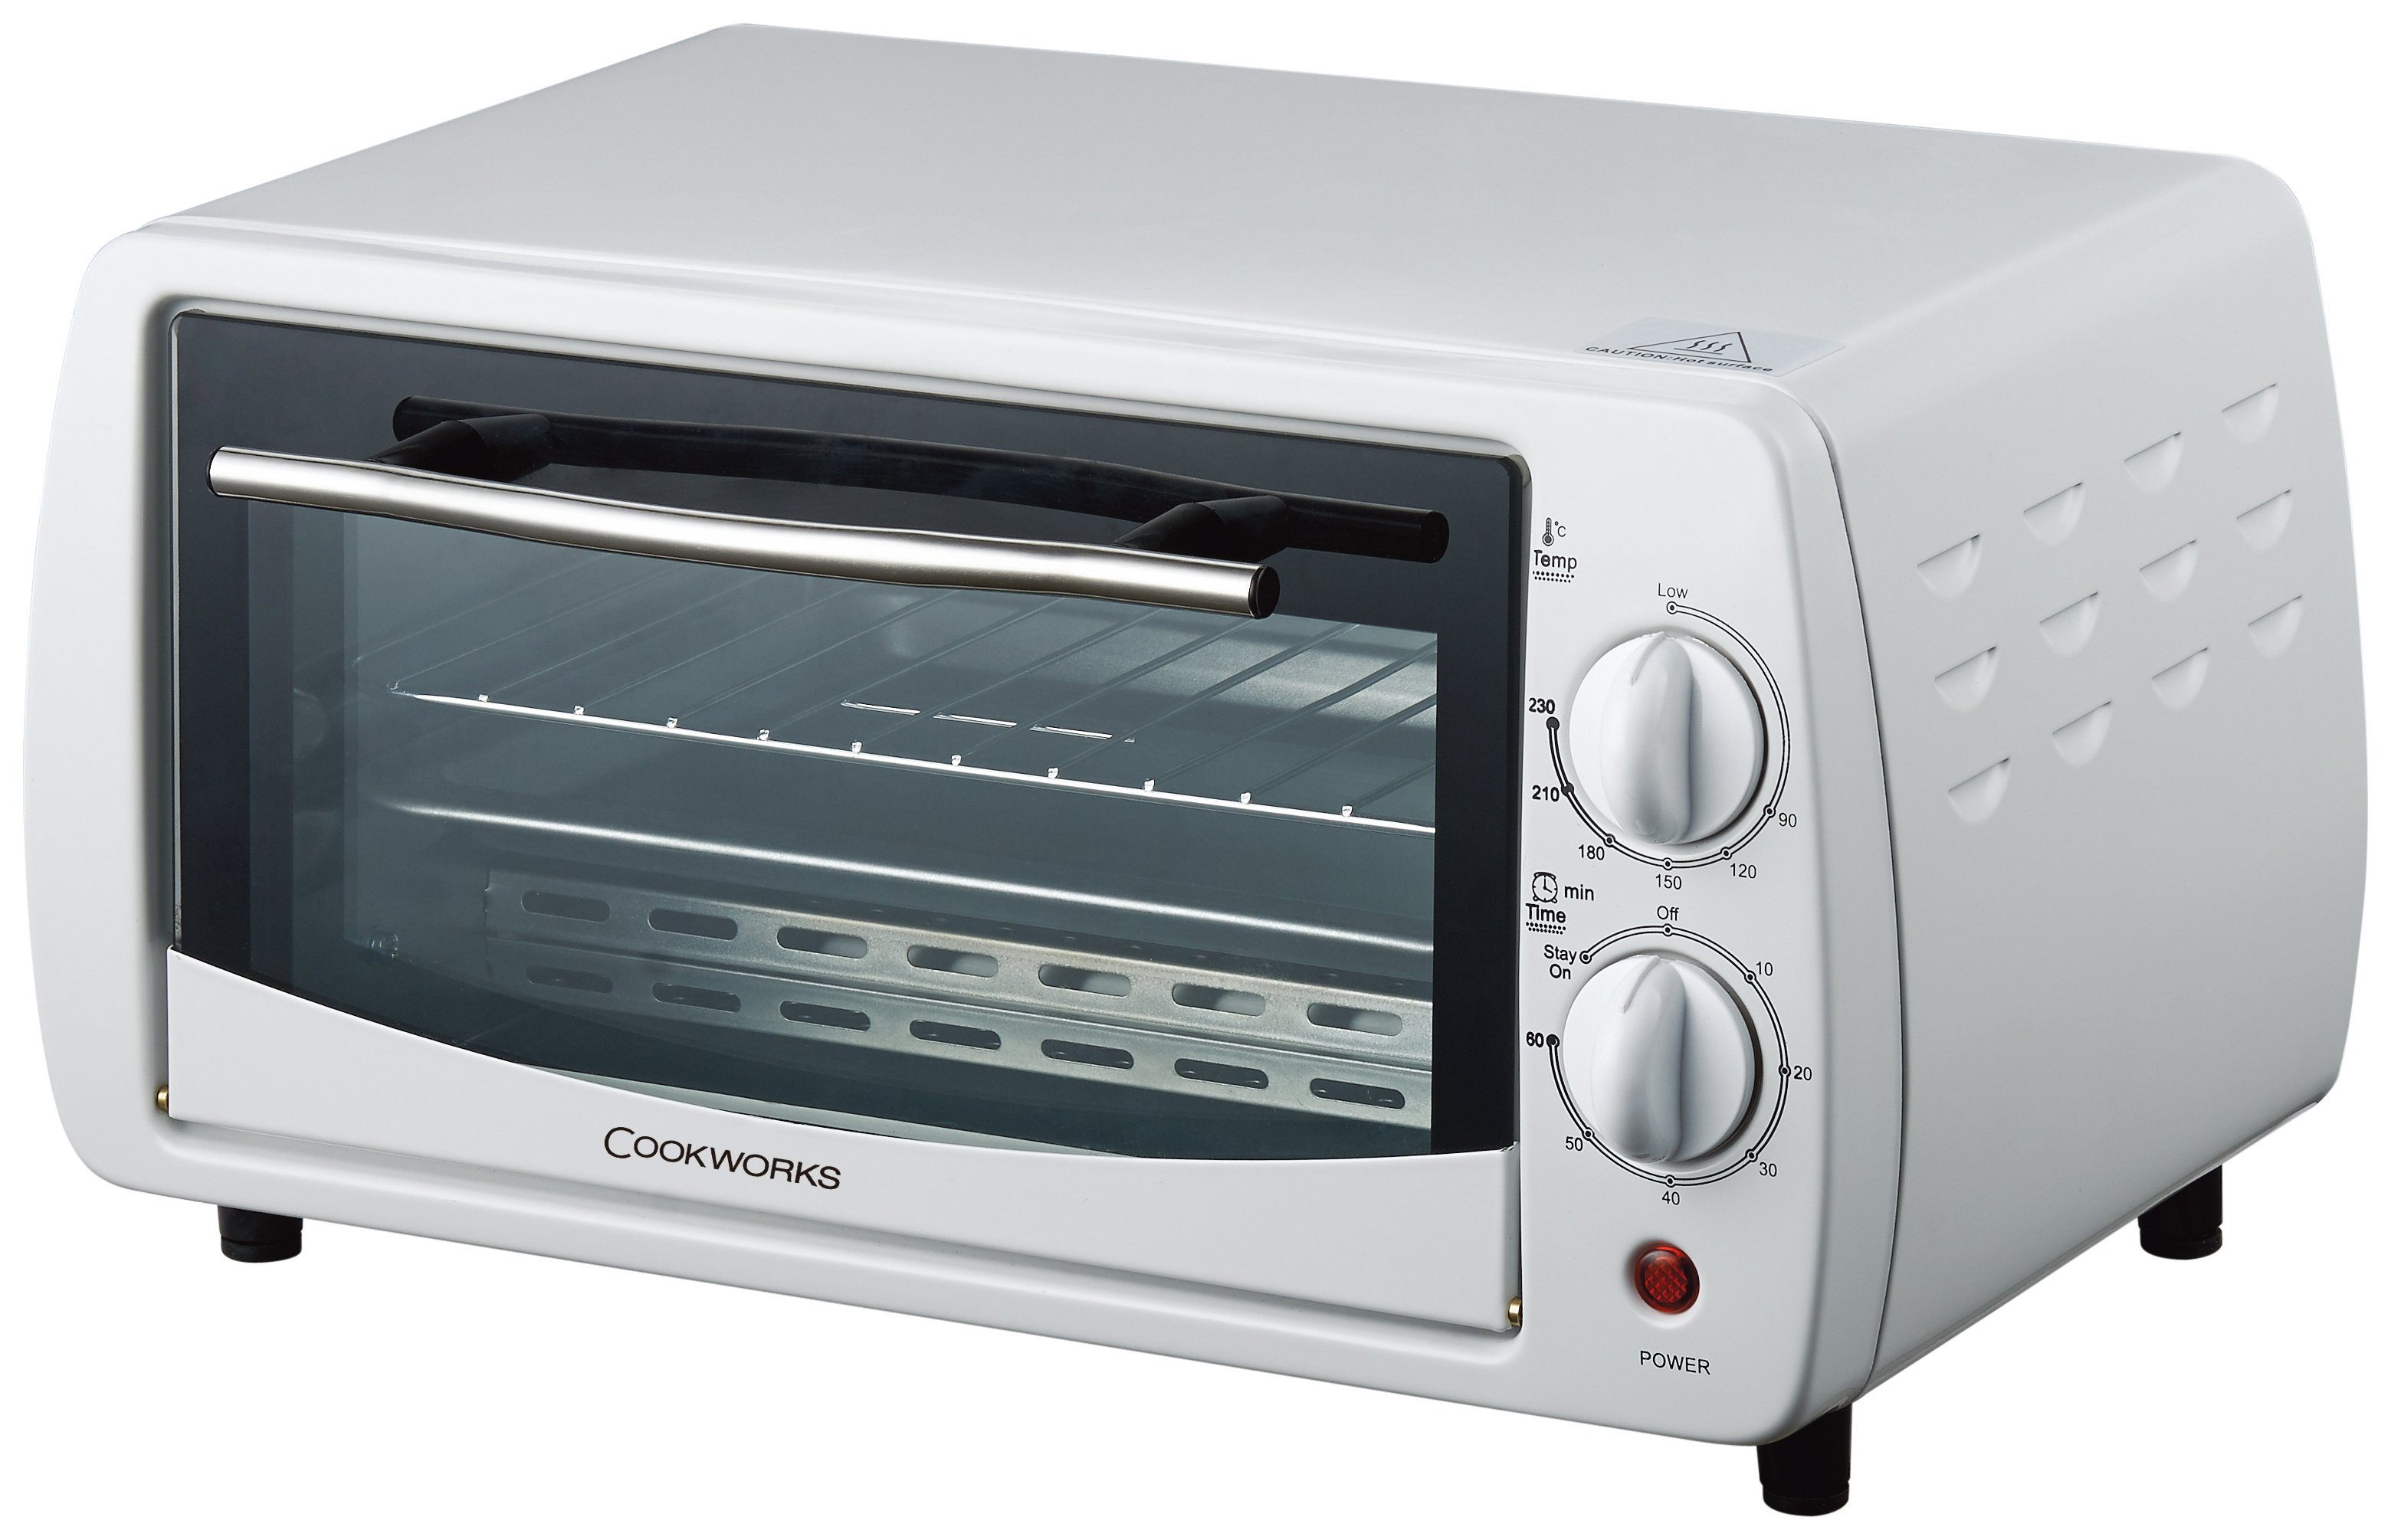 Countertop Oven With Hob : cookworks toaster oven white this cookworks toaster oven has some ...